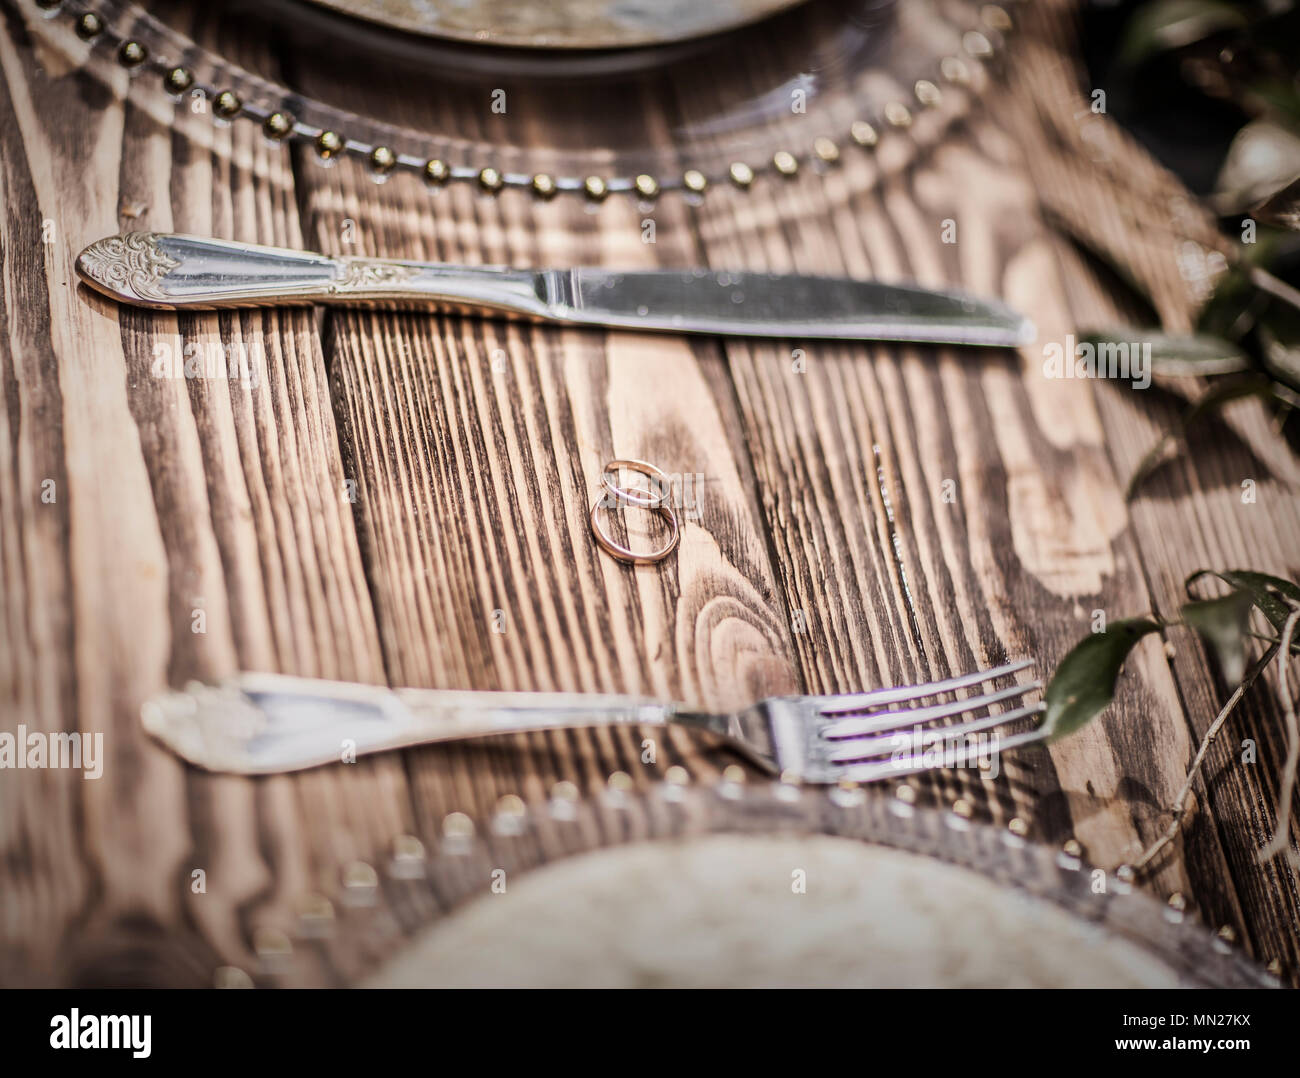 engagement rings and Cutlery on a wooden table - Stock Image